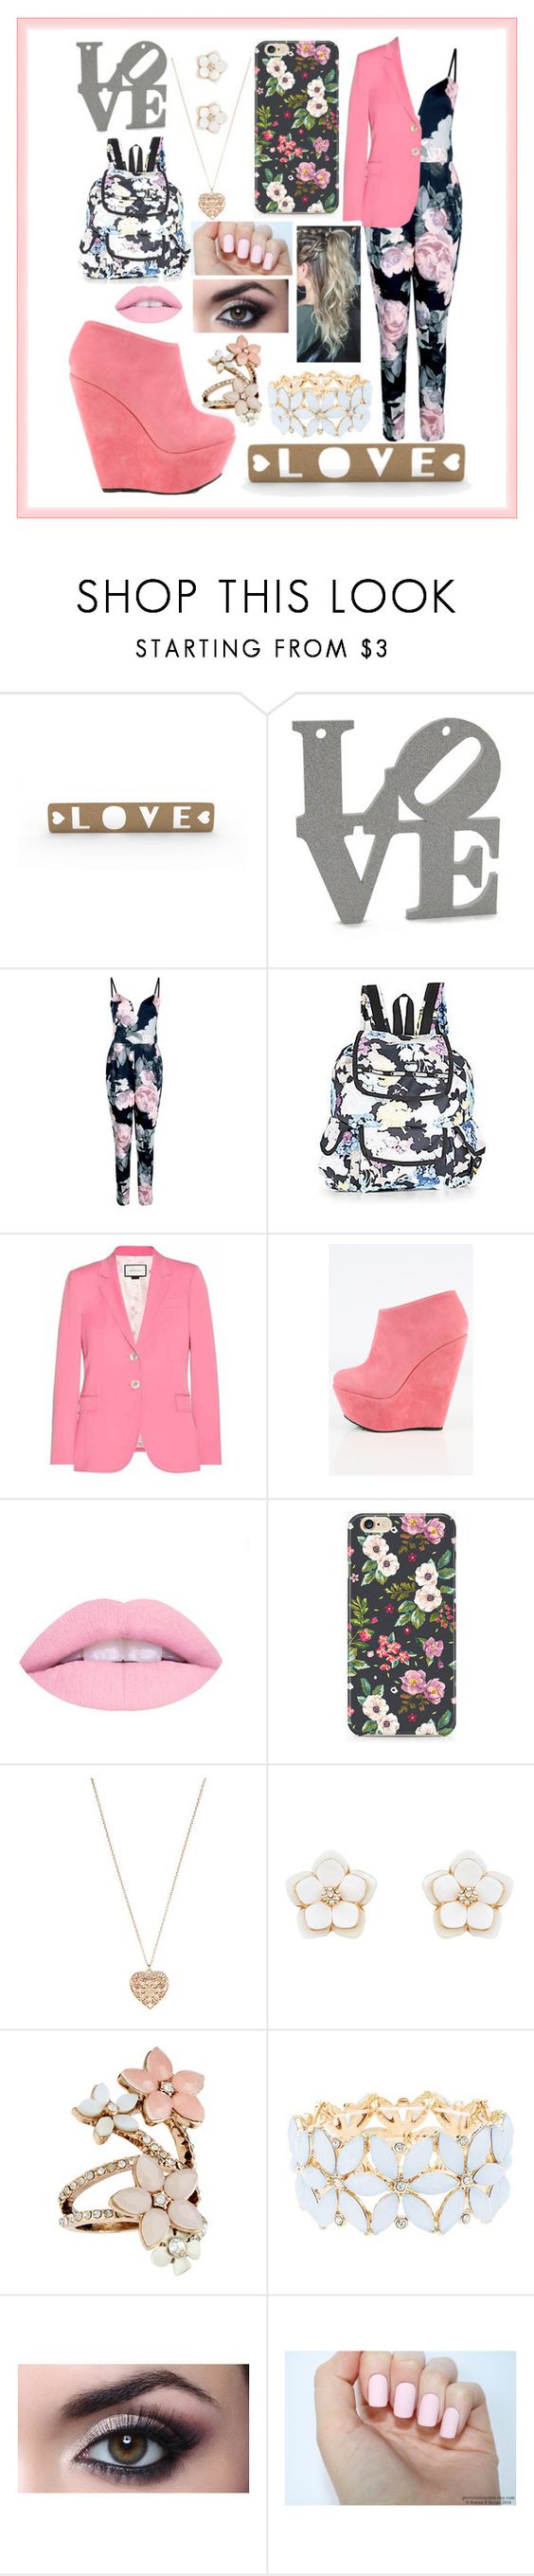 """""""Love In High School"""" by sodenoshirayuki-kuran ❤ liked on Polyvore featuring Boohoo, LeSportsac, Gucci, Accessorize and Charlotte Russe"""